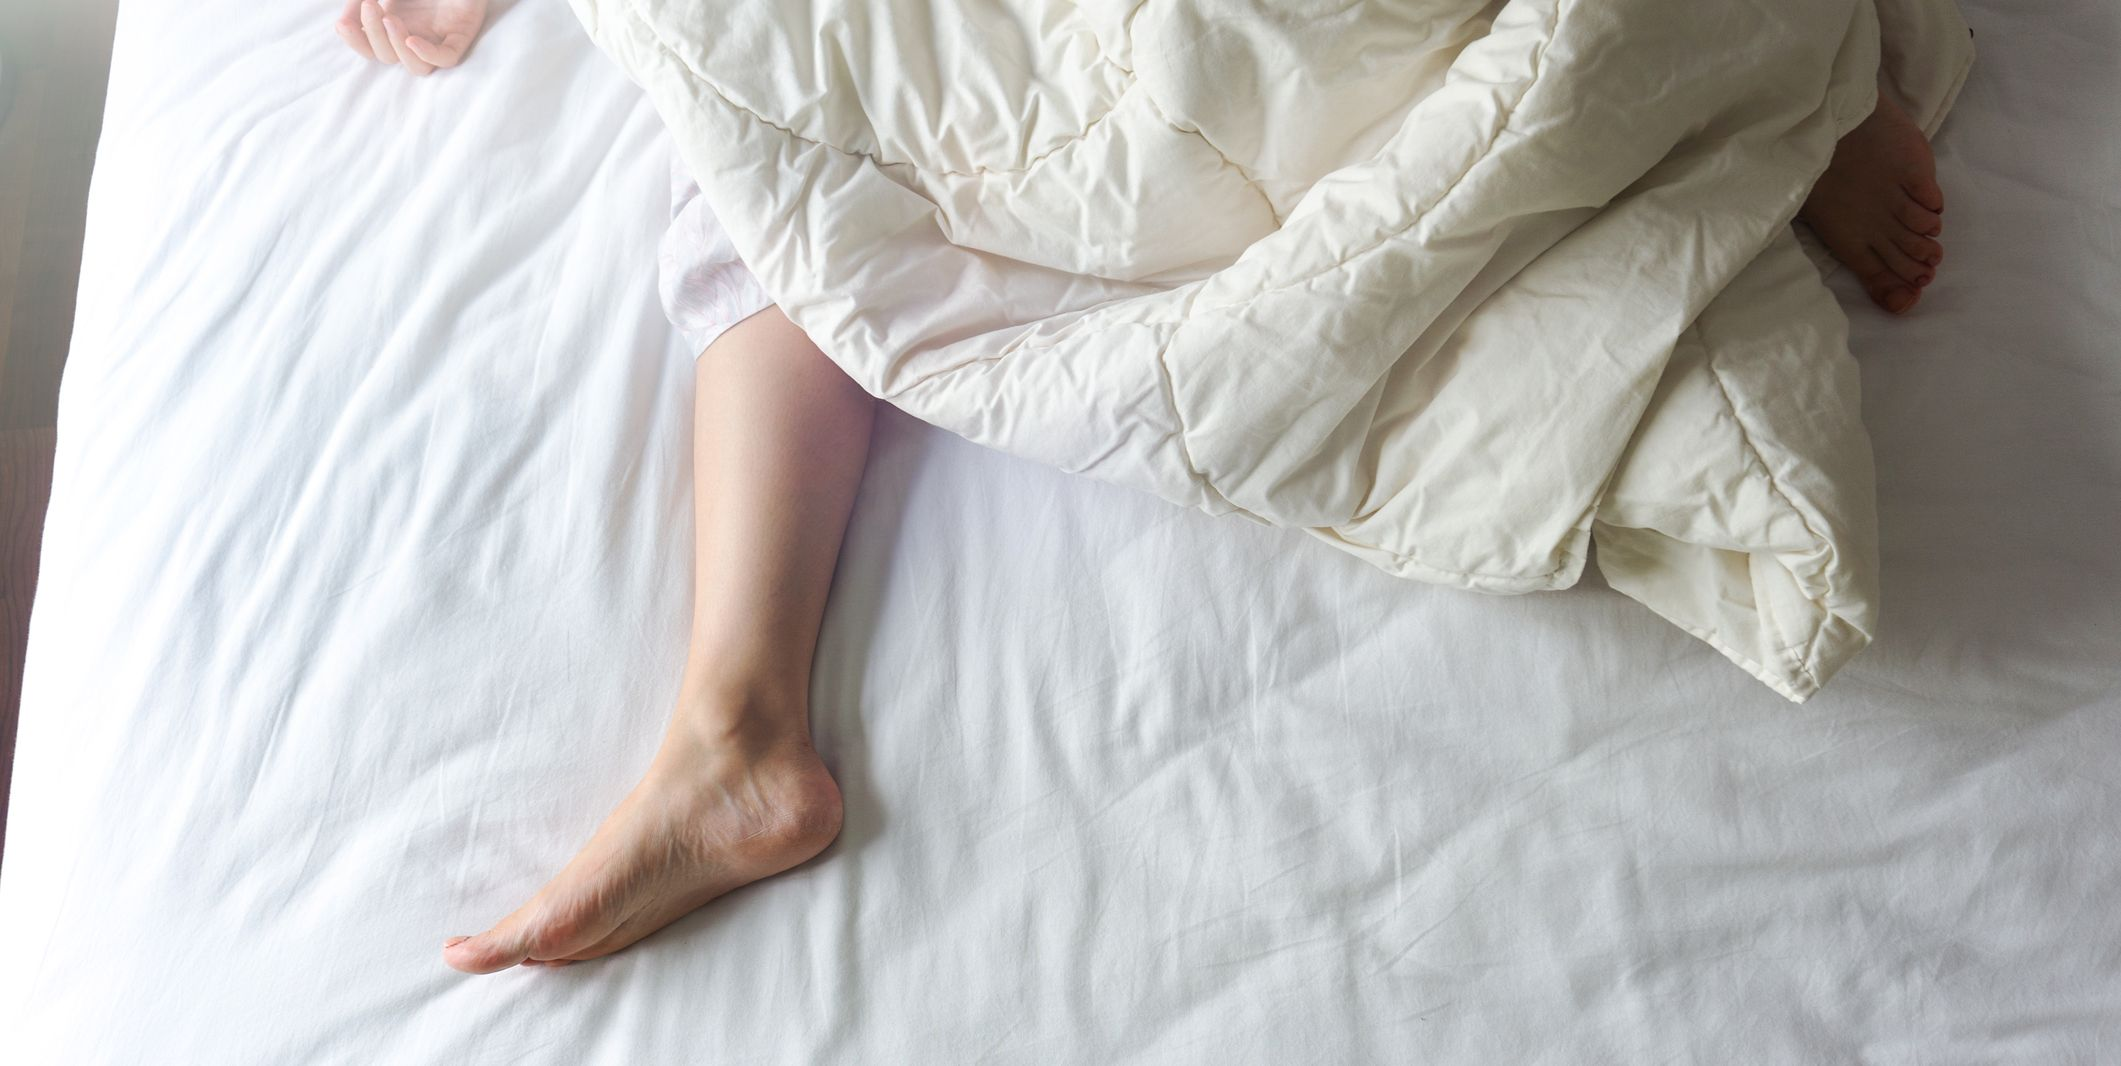 Bare feet on bed